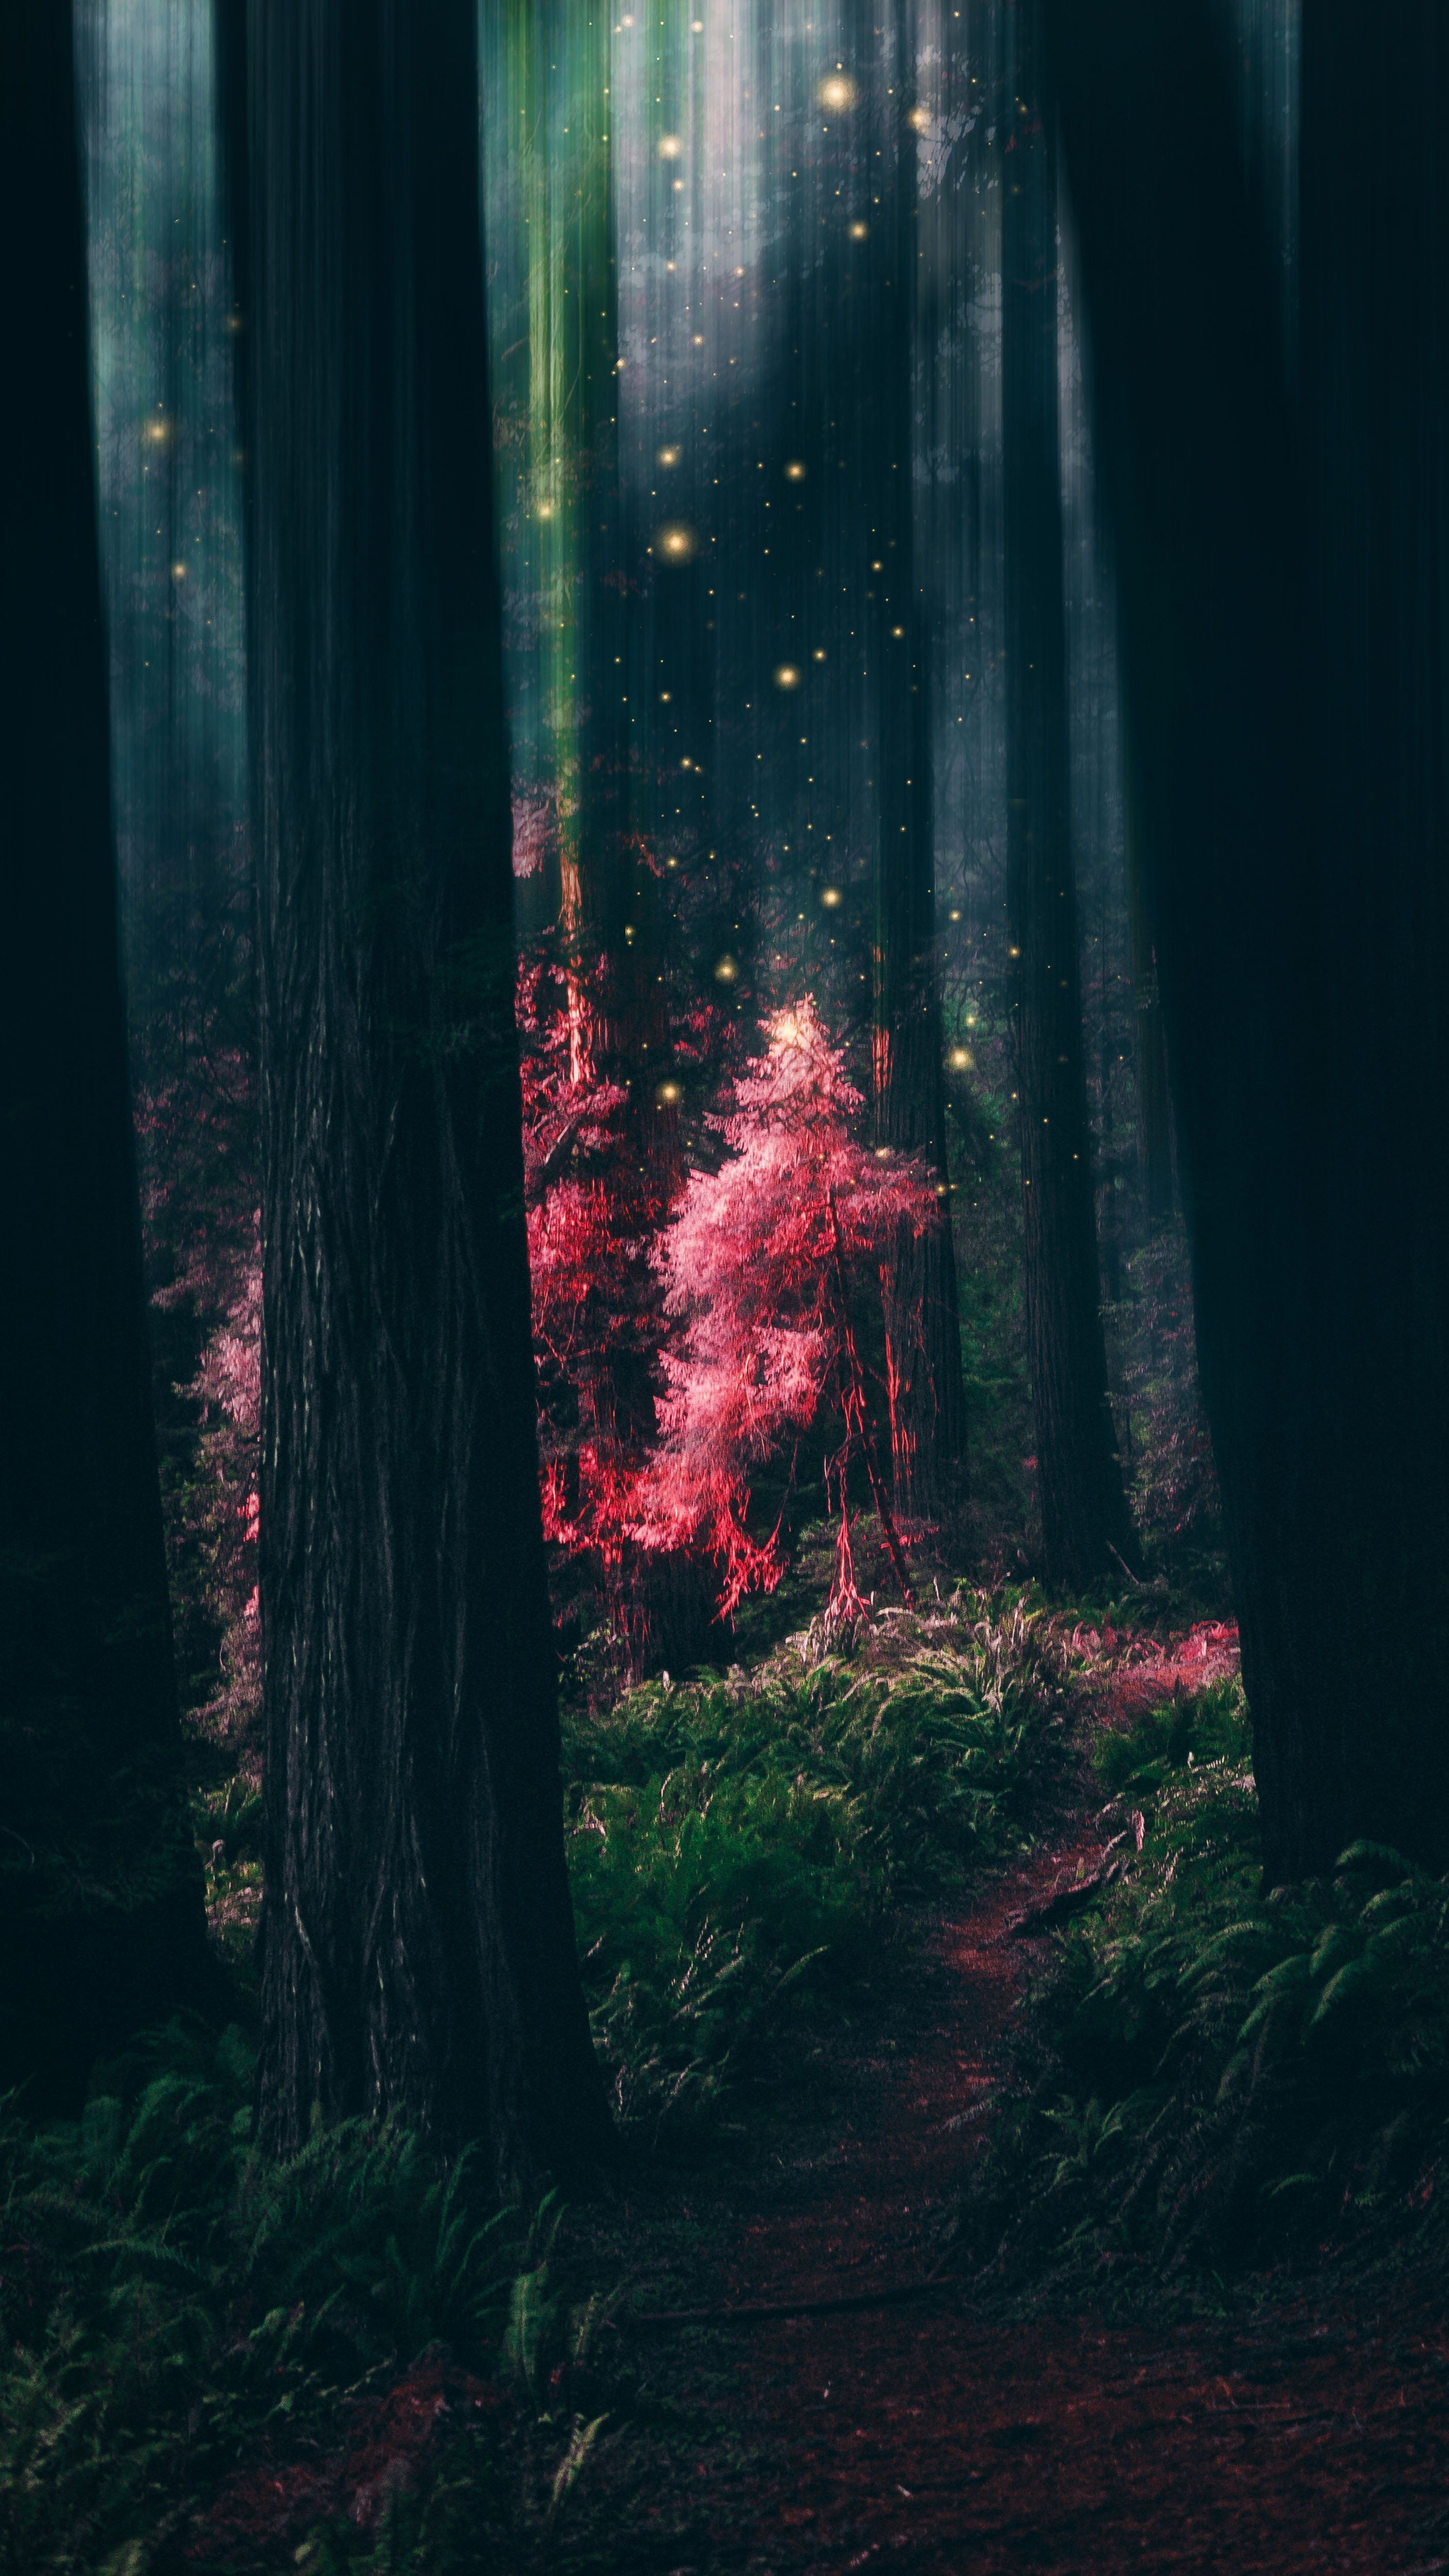 Japanese Forest Iphone Wallpapers On Wallpaperdog